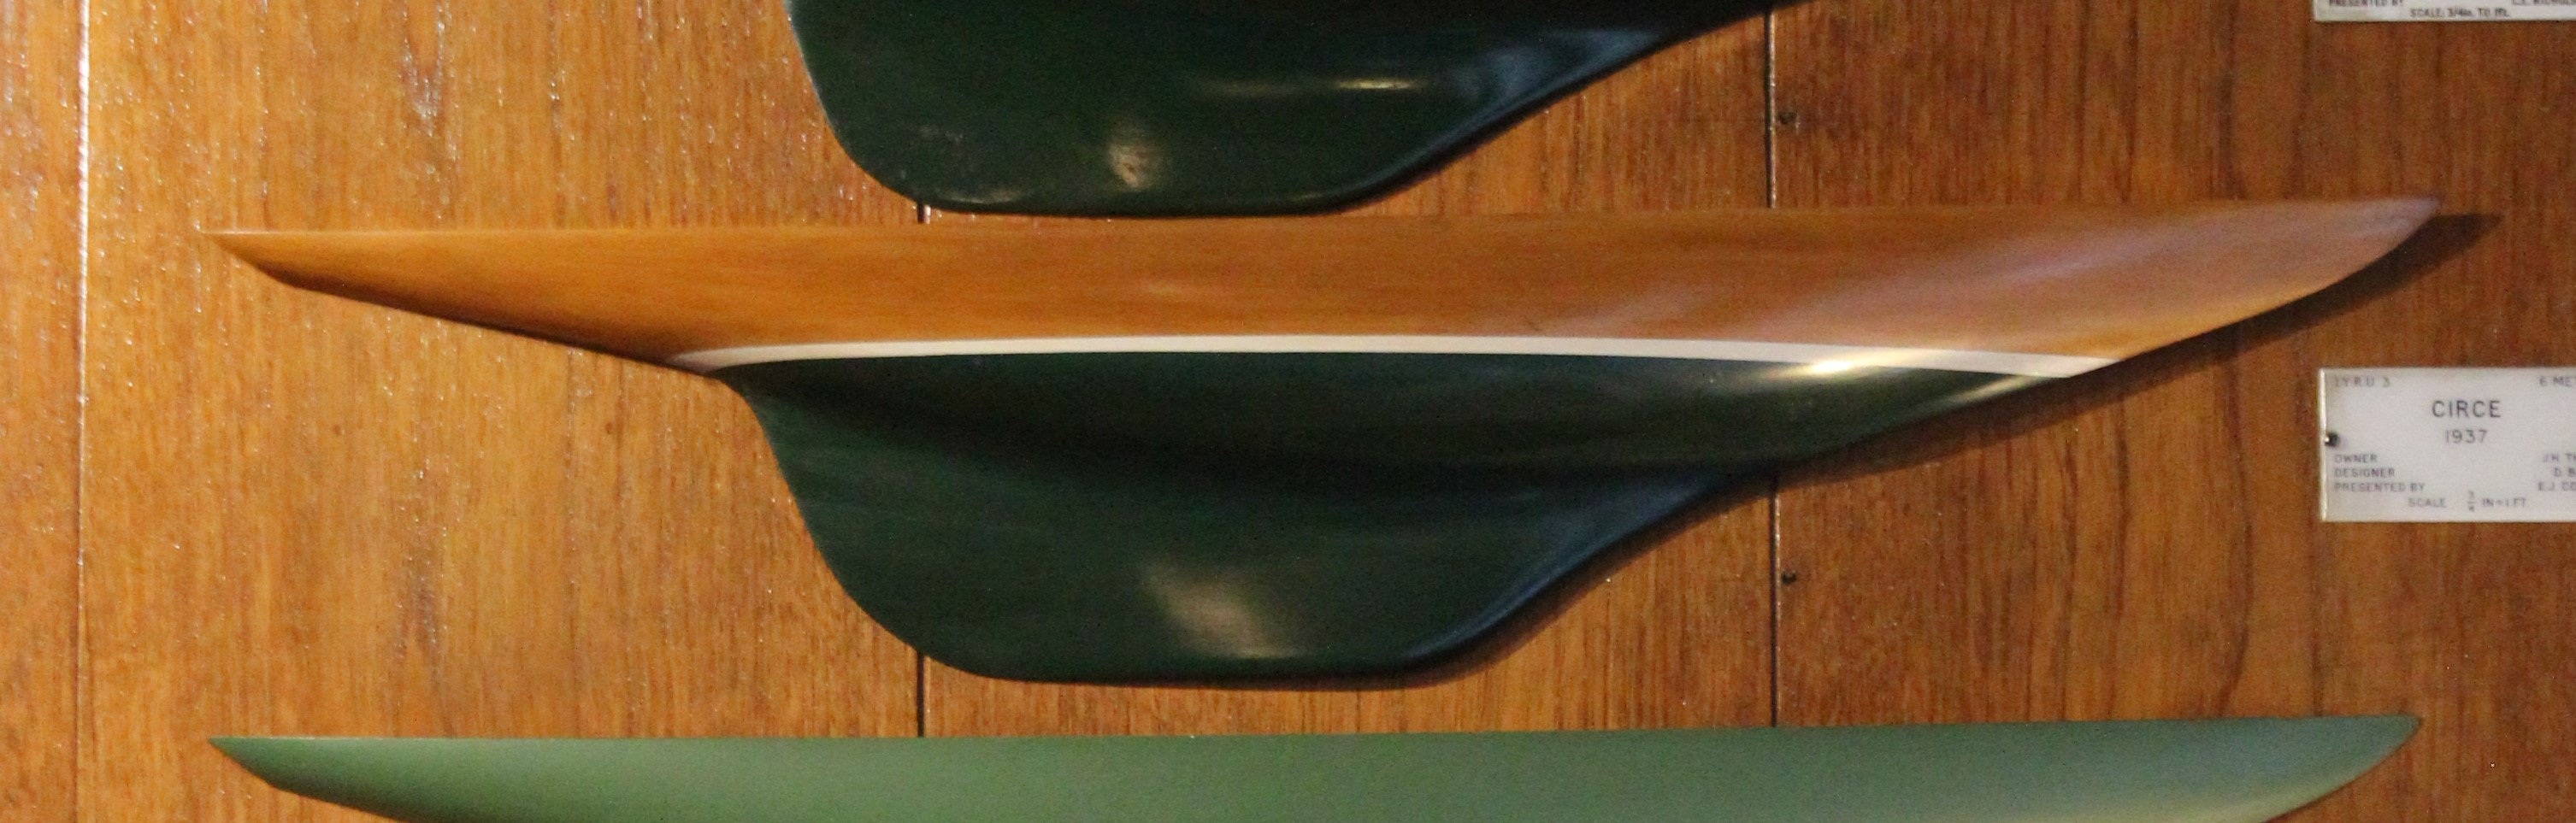 Boat model mounted on a wooden wall